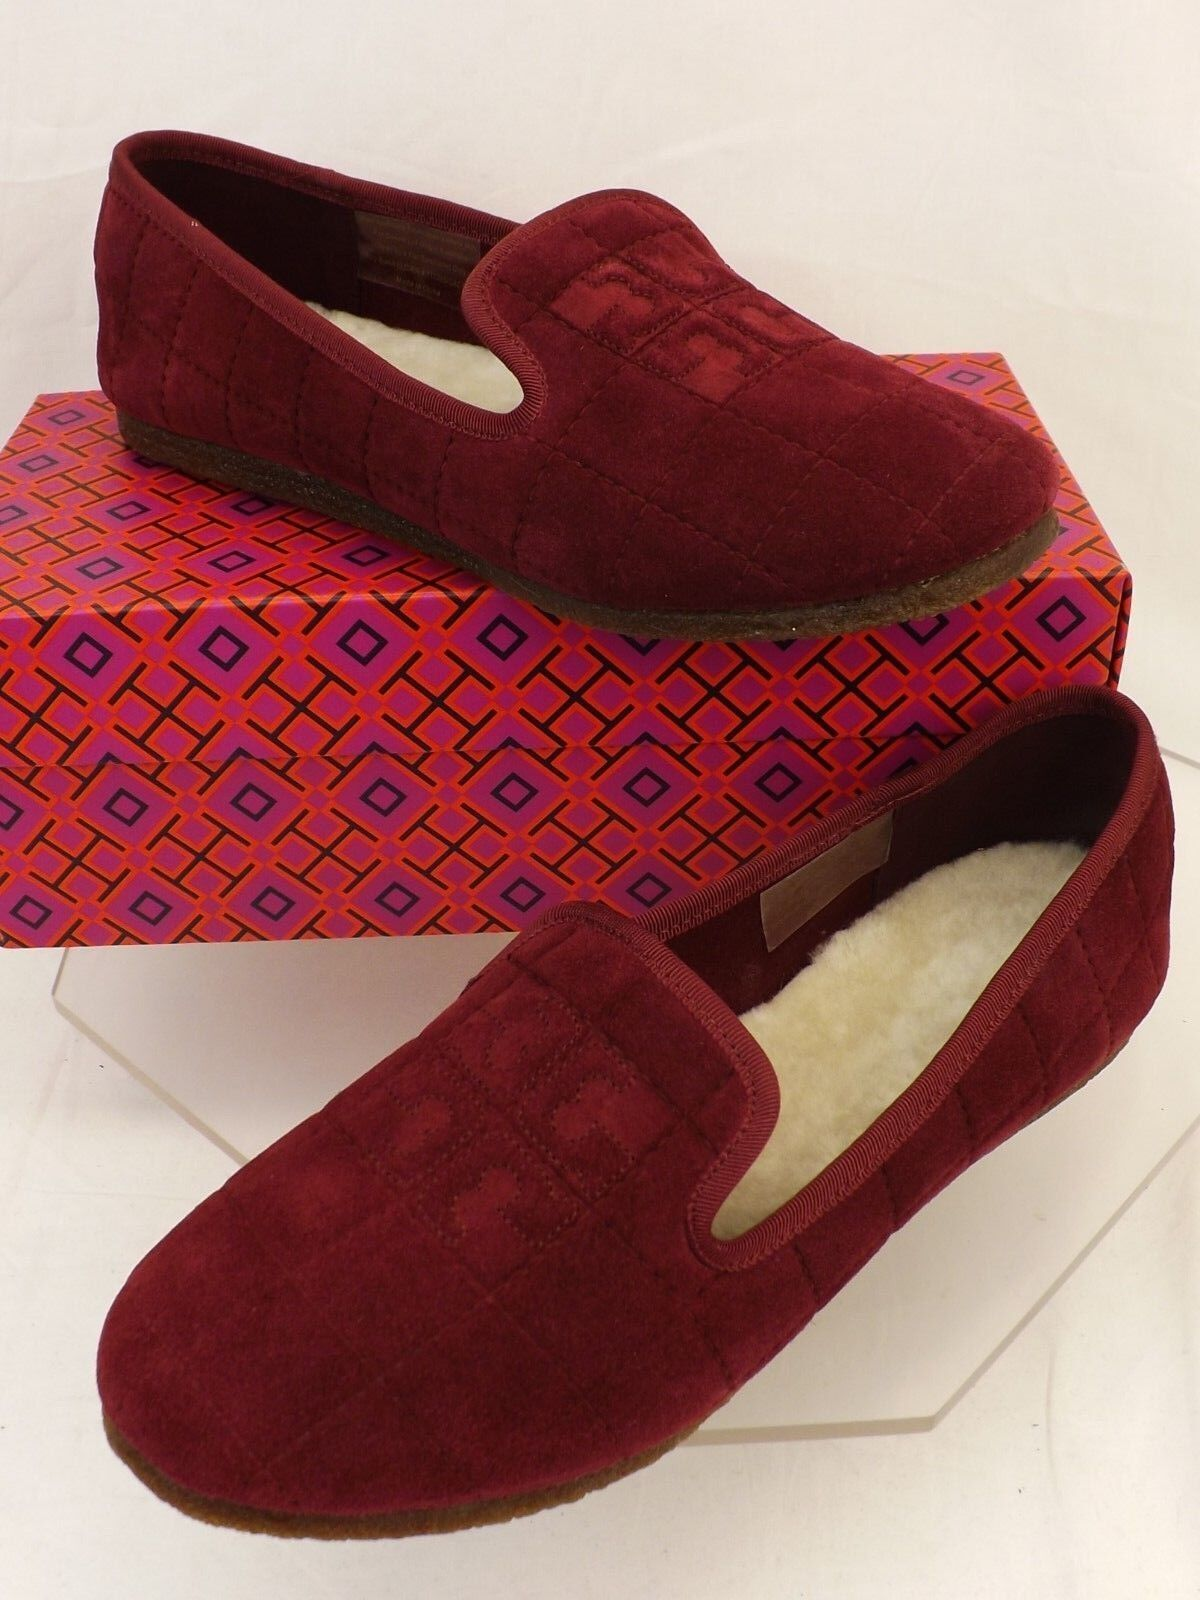 NIB TORY BURCH COWLEY PORT ROYAL QUILTED SUEDE REVA LAMB FUR SMOKING SLIPPERS 8